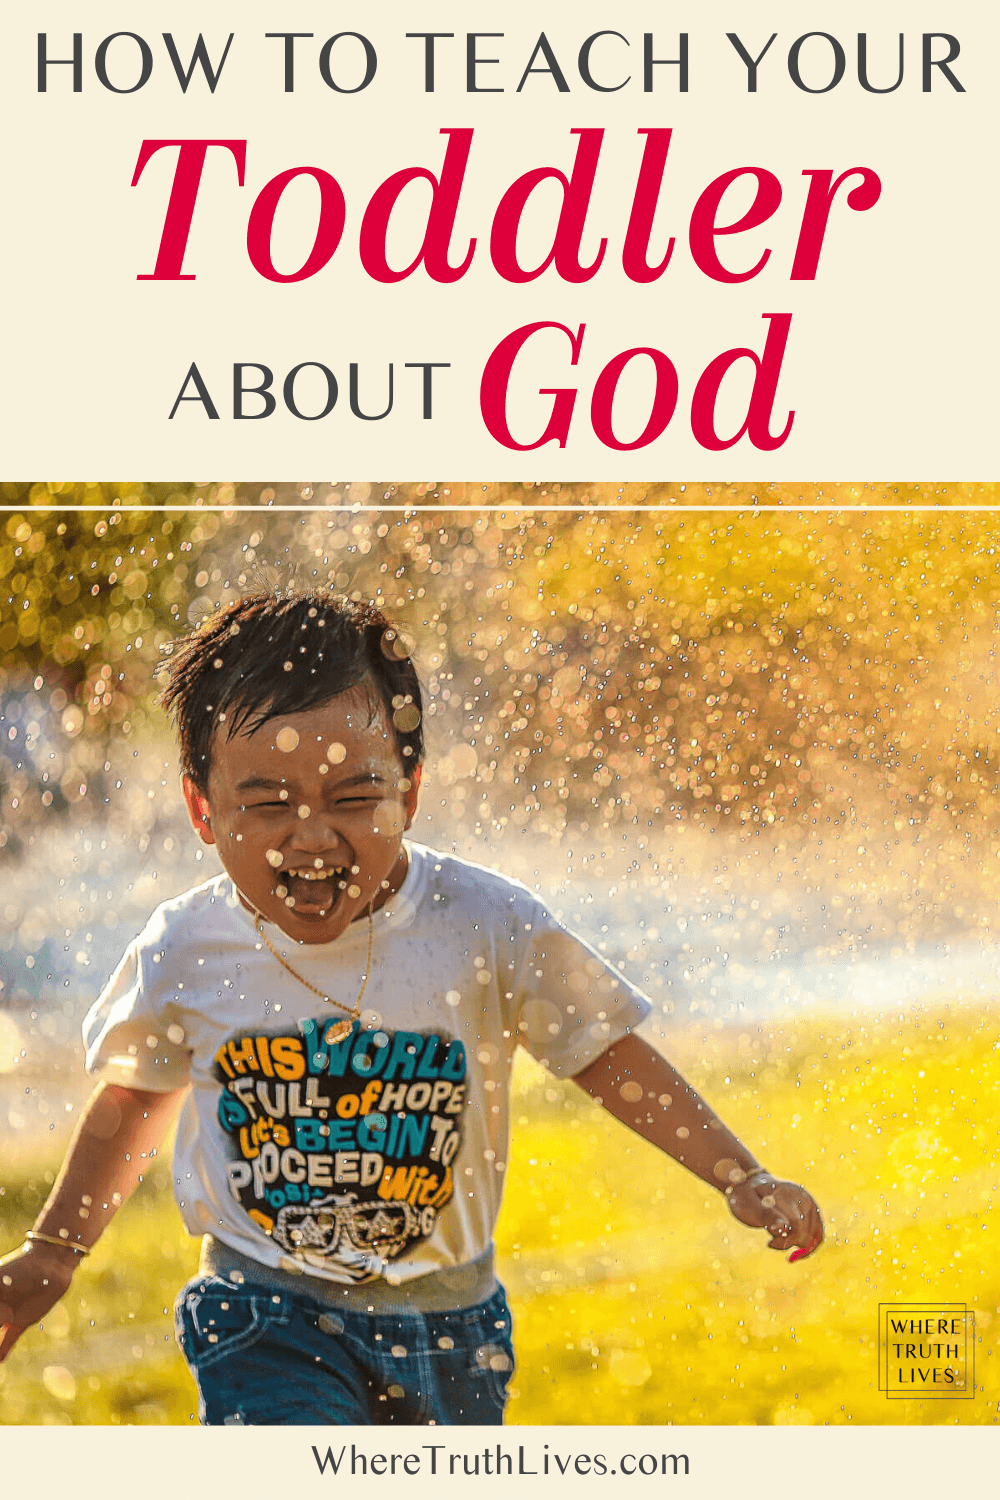 How To Teach Your Toddler About God